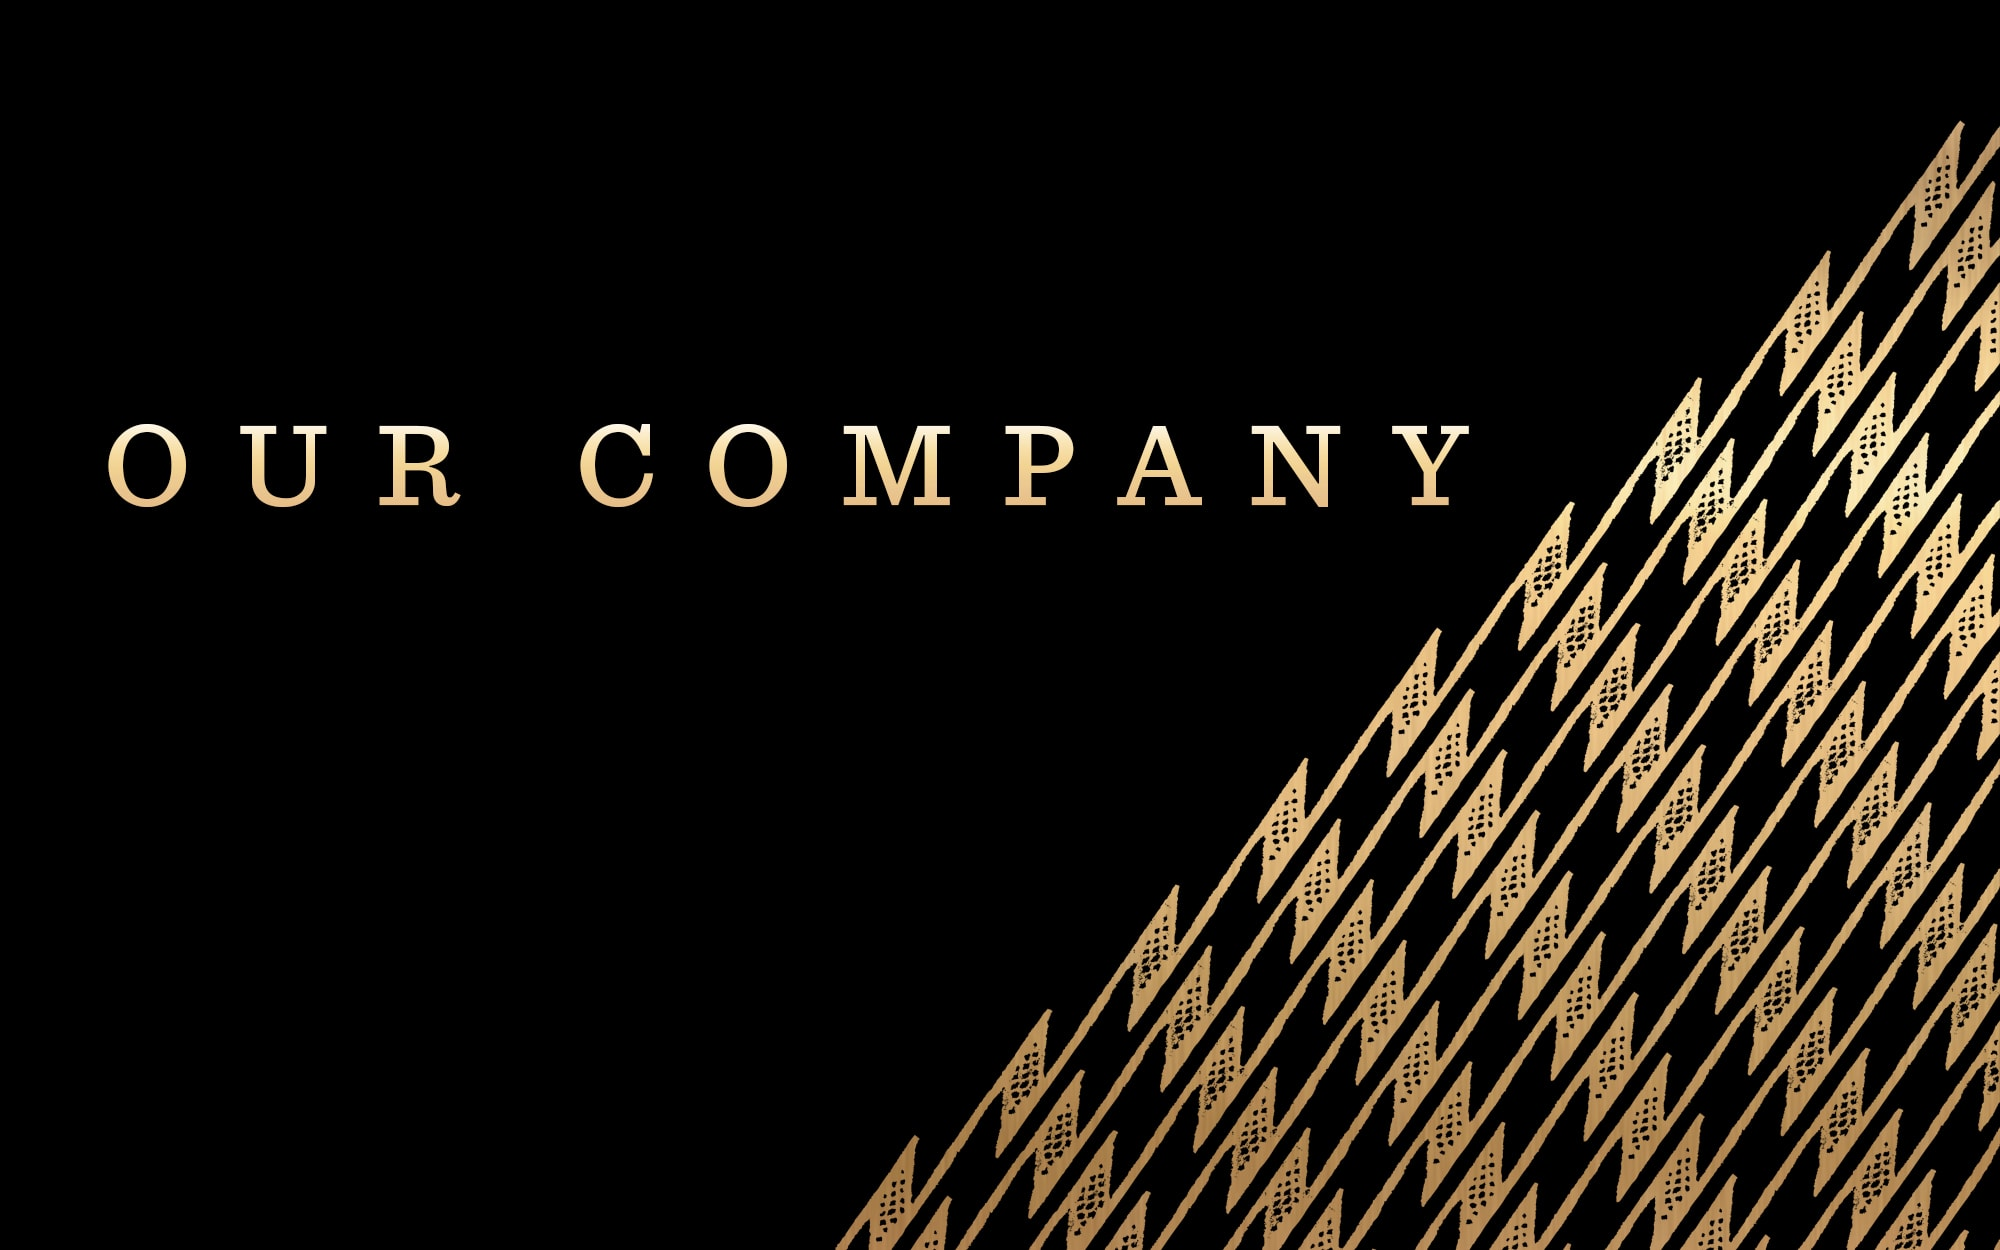 Our Company Banner